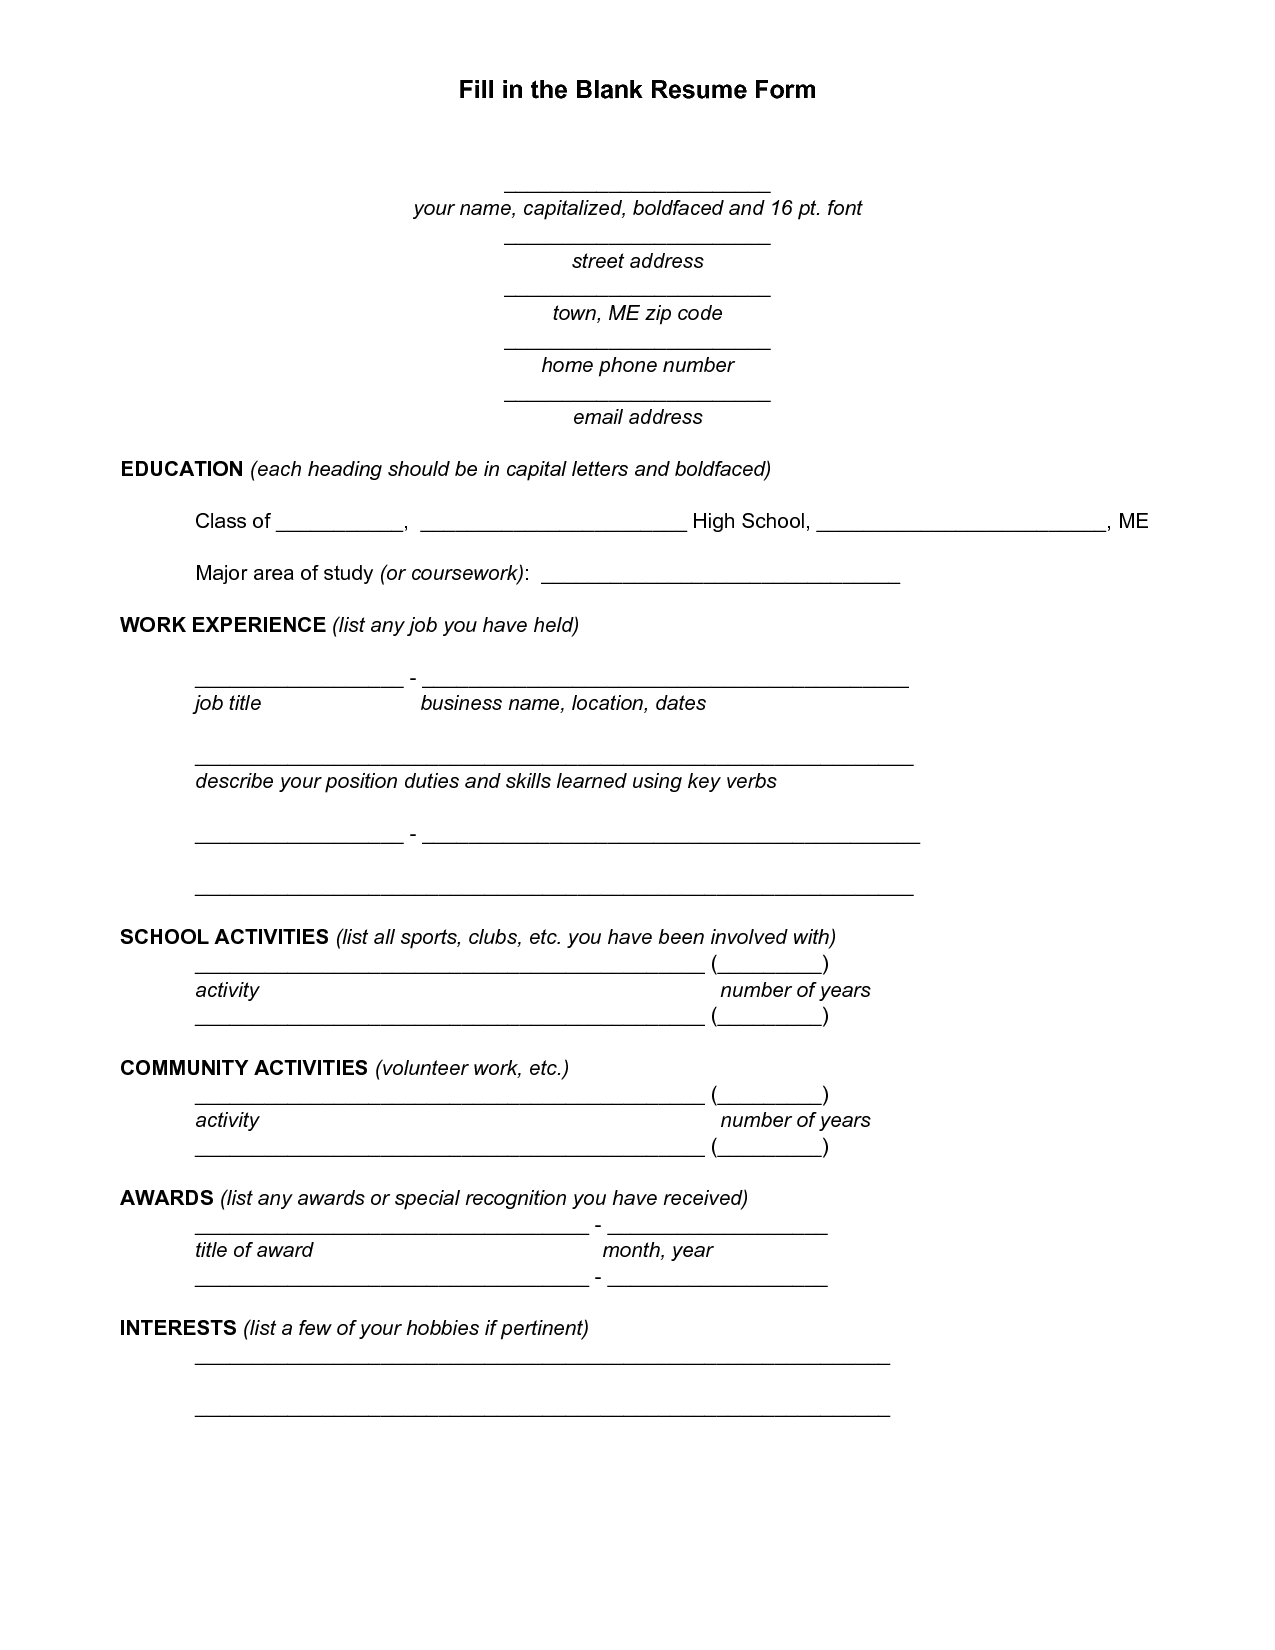 Resume Blank Forms To Fill Out | Fill In The Blank Resume Form - Pdf - Free Blank Resume Forms Printable